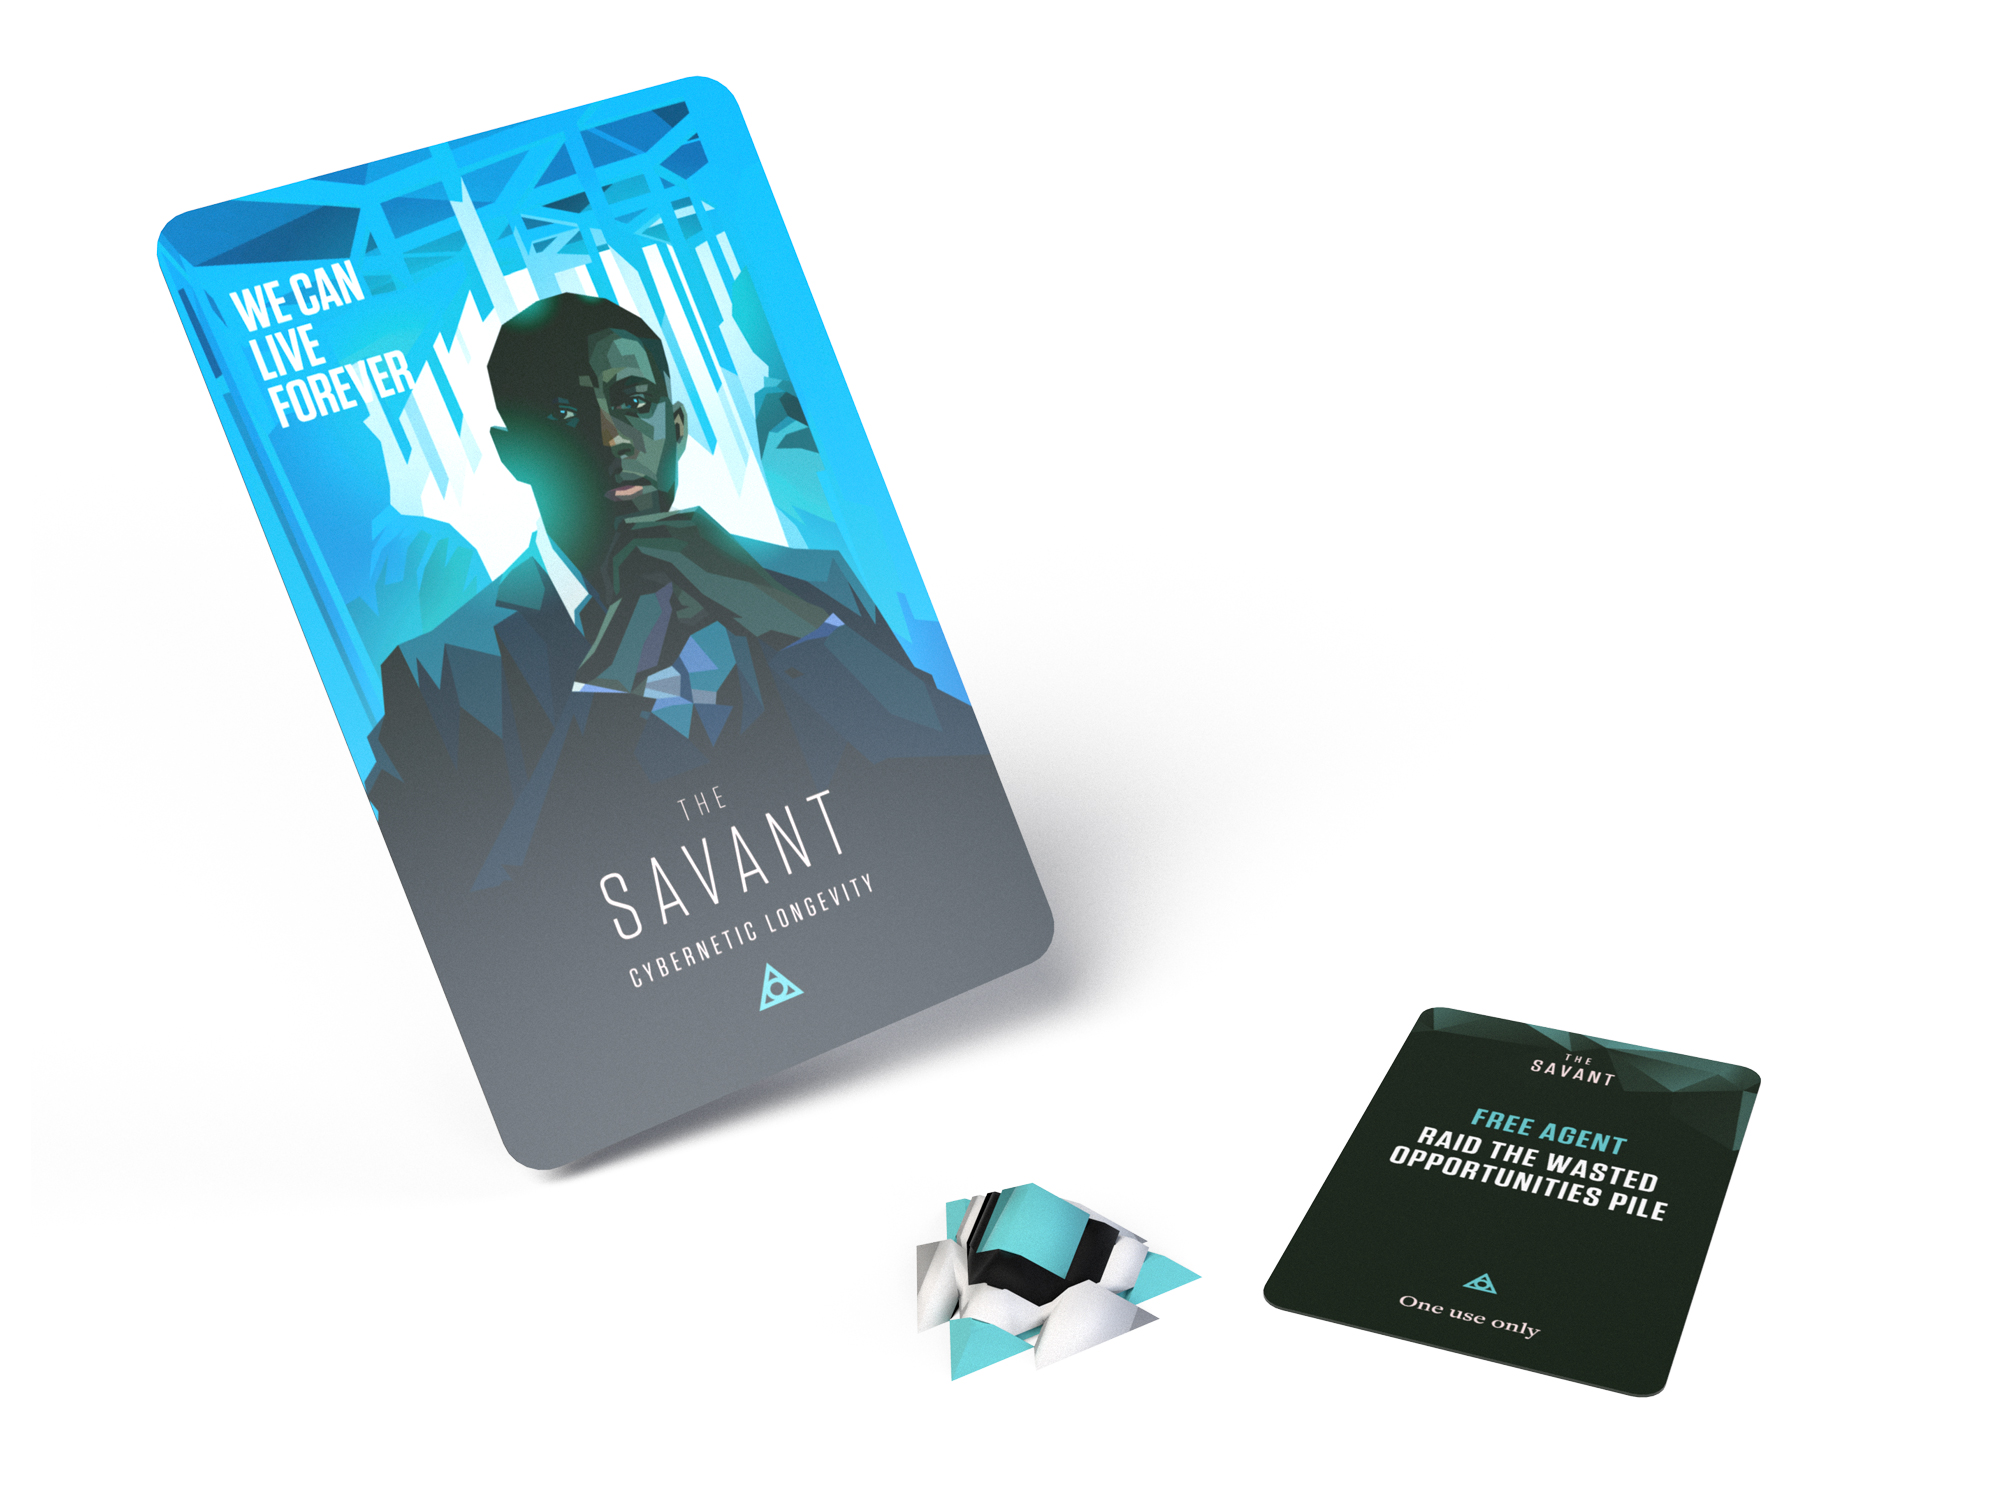 The Savant archetype - The Savant player character will create a technology that lets us live forever if he wins, but of course, available only to the 1% that can afford it...